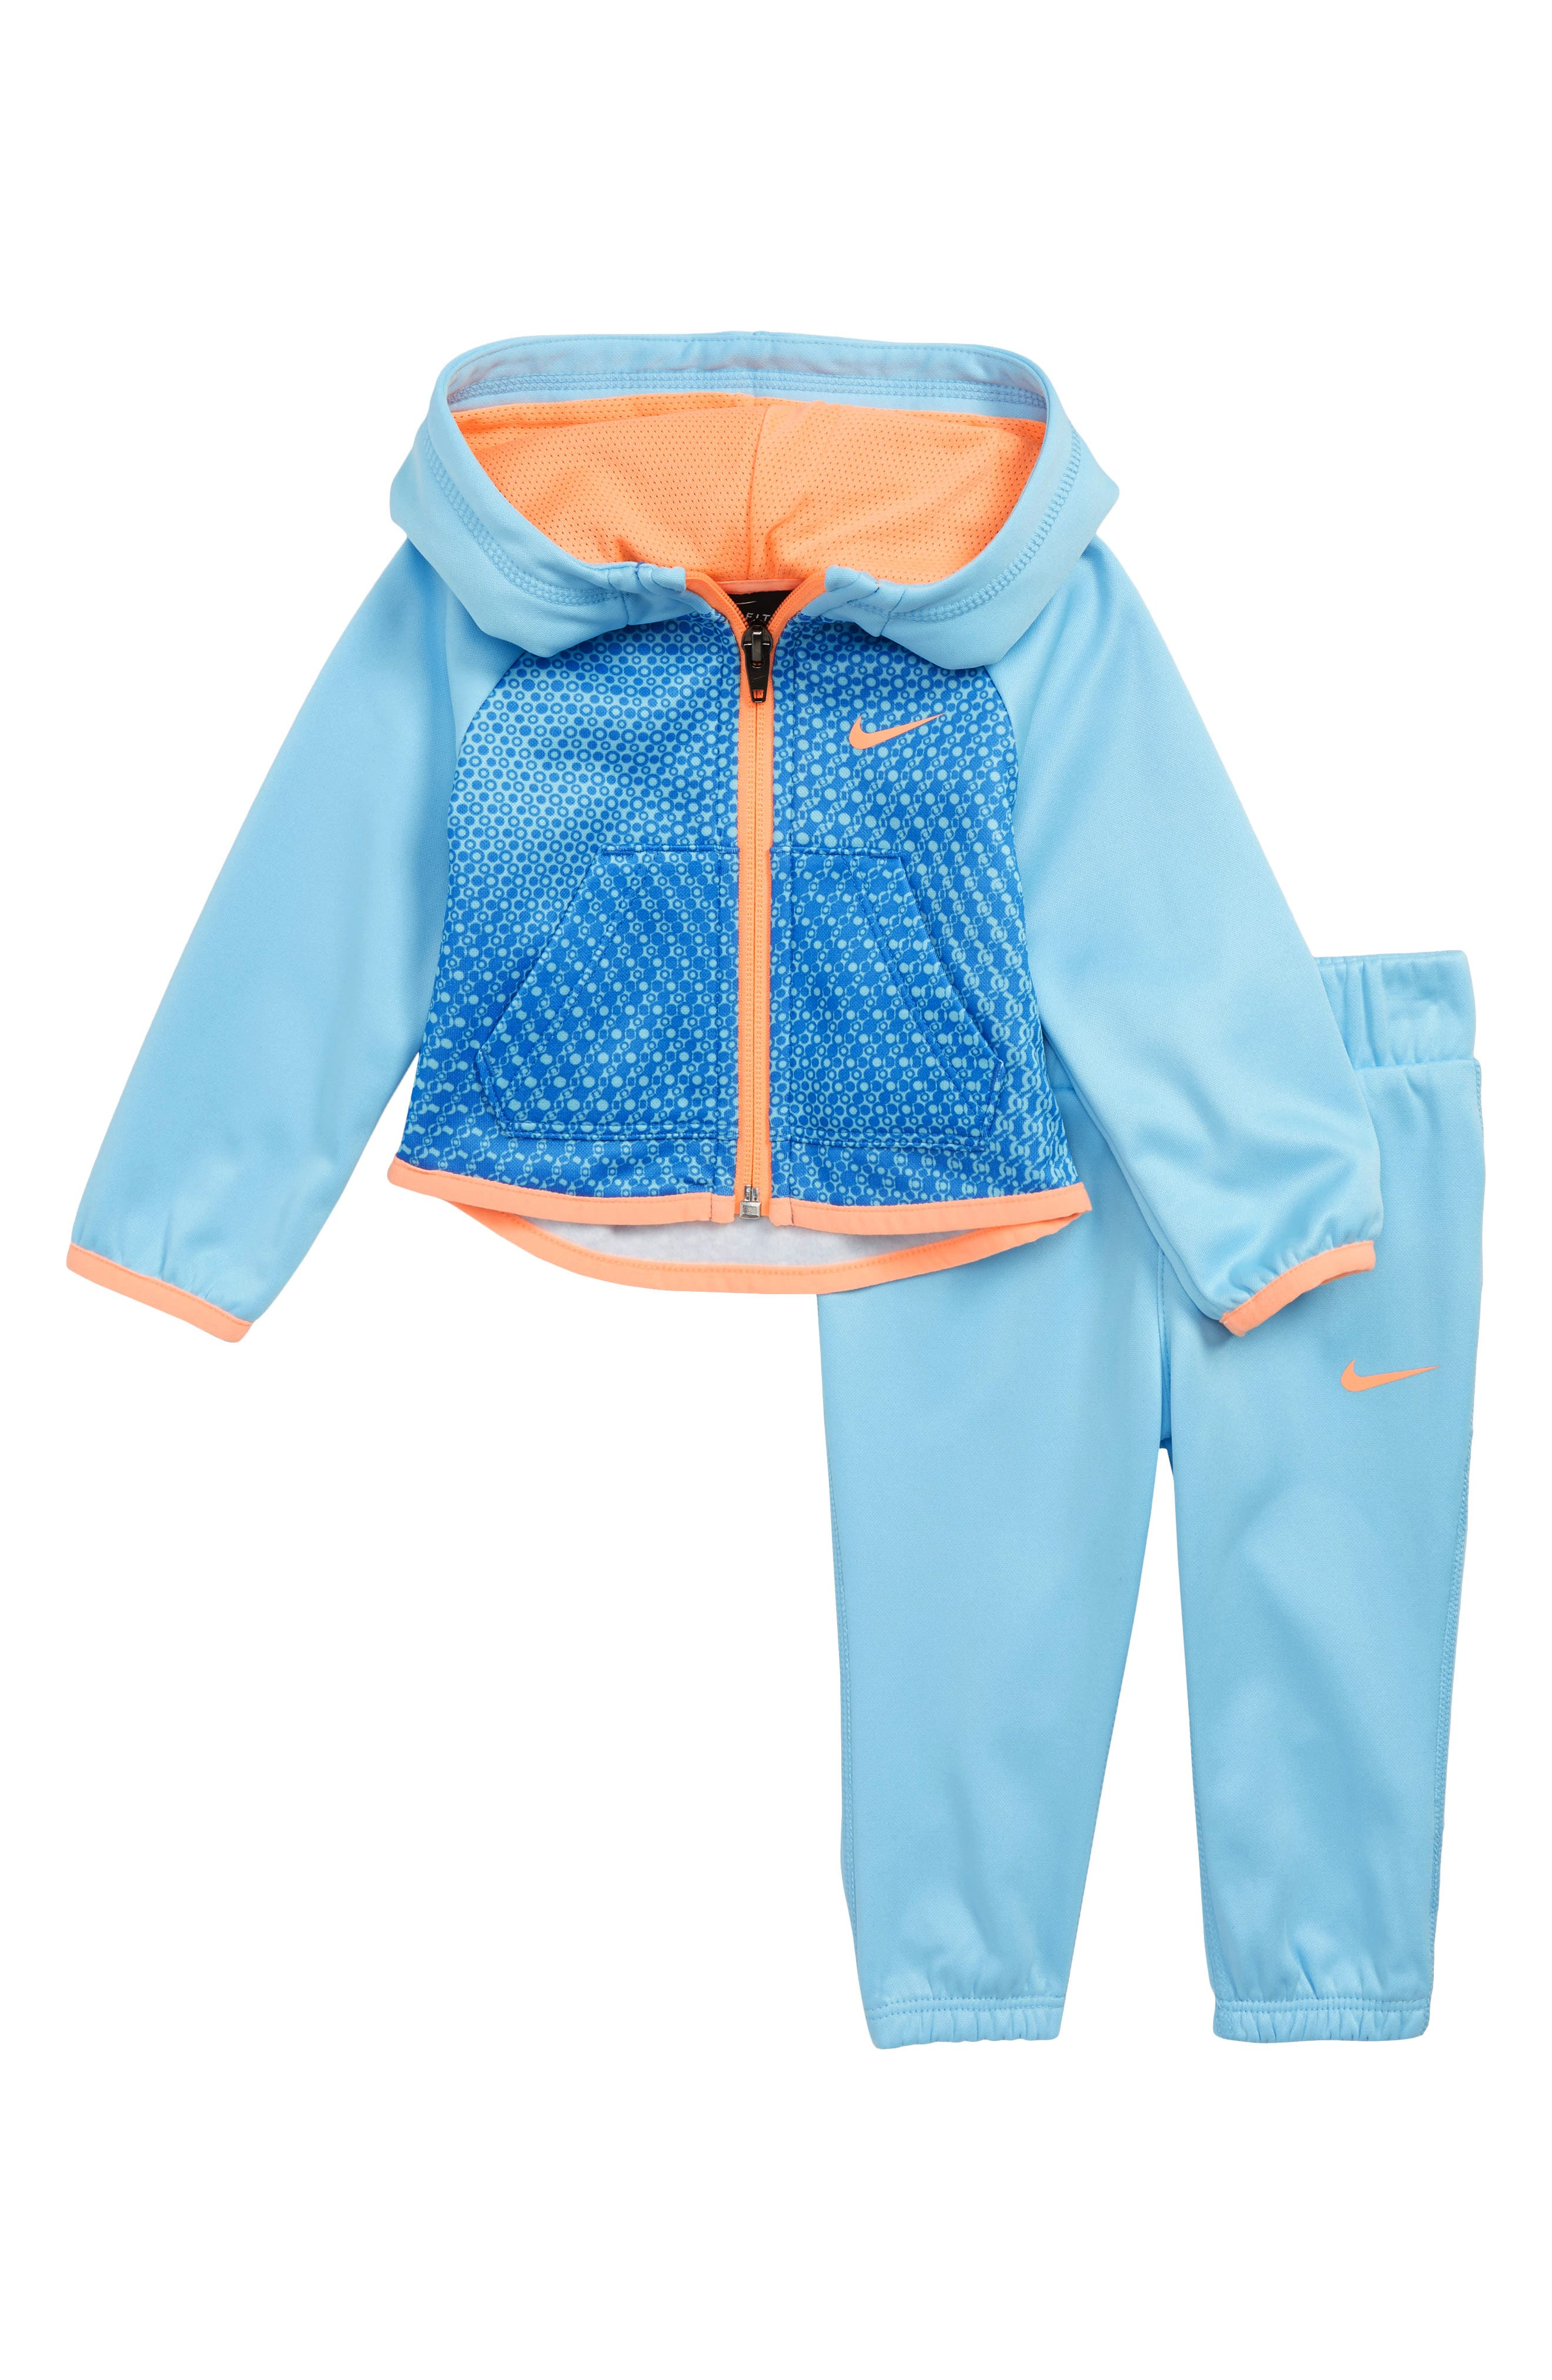 Therma Hoodie & Pants Set,                             Main thumbnail 1, color,                             BLUE CHILL